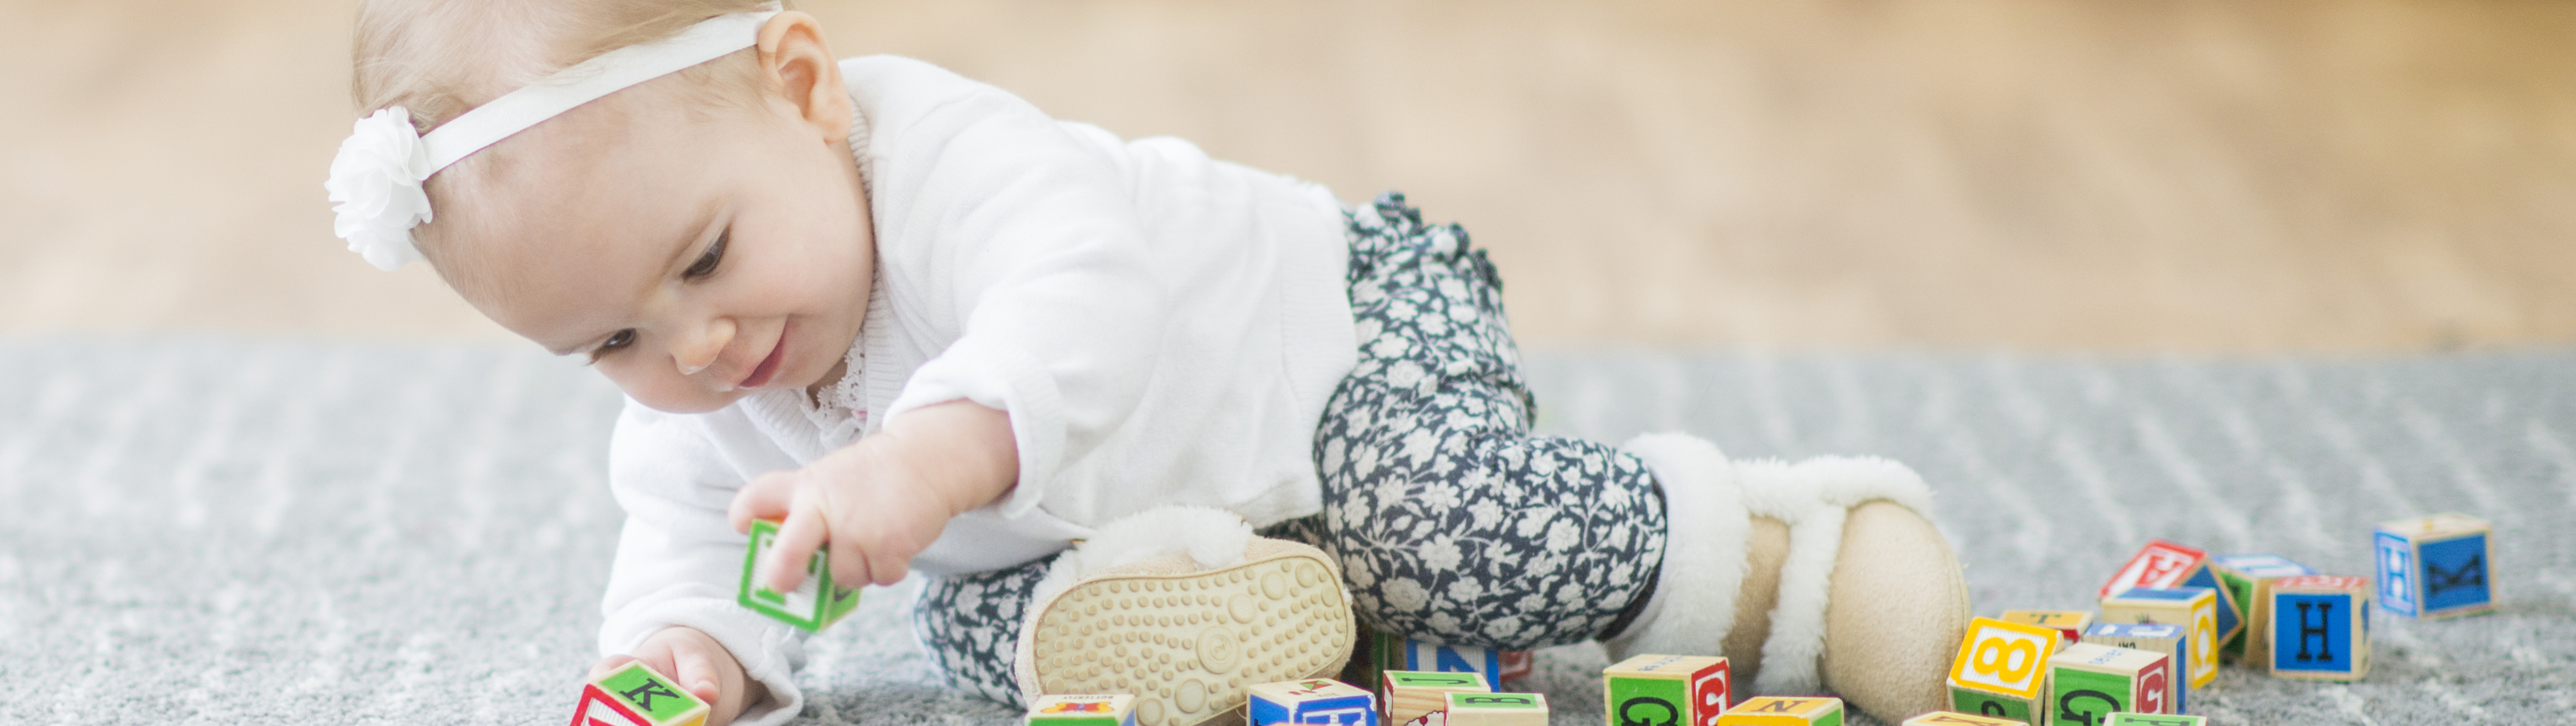 Baby girl lying on a rug playing with wood letter blocks